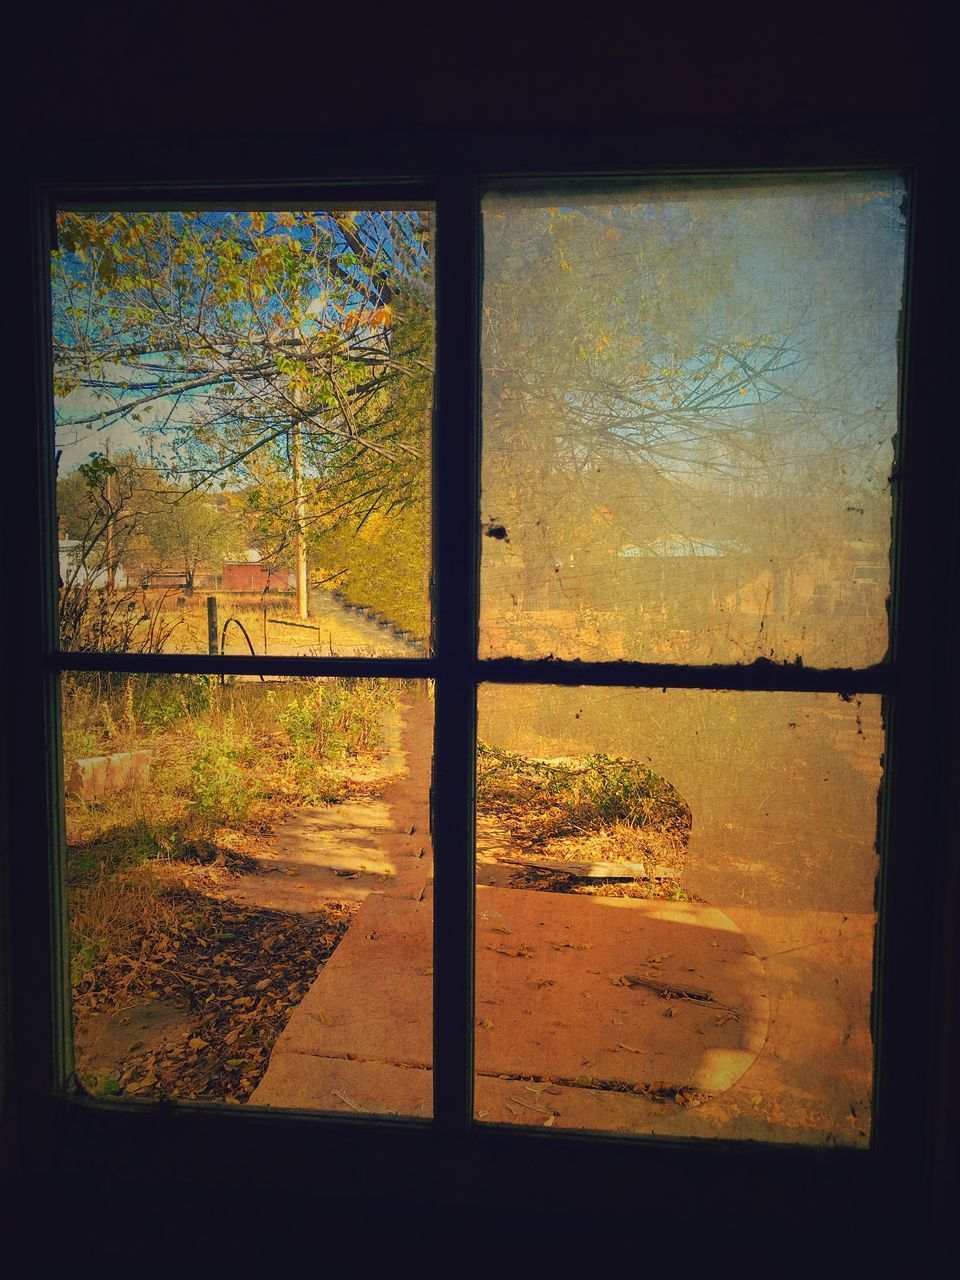 tree, window, no people, day, sky, indoors, architecture, nature, close-up